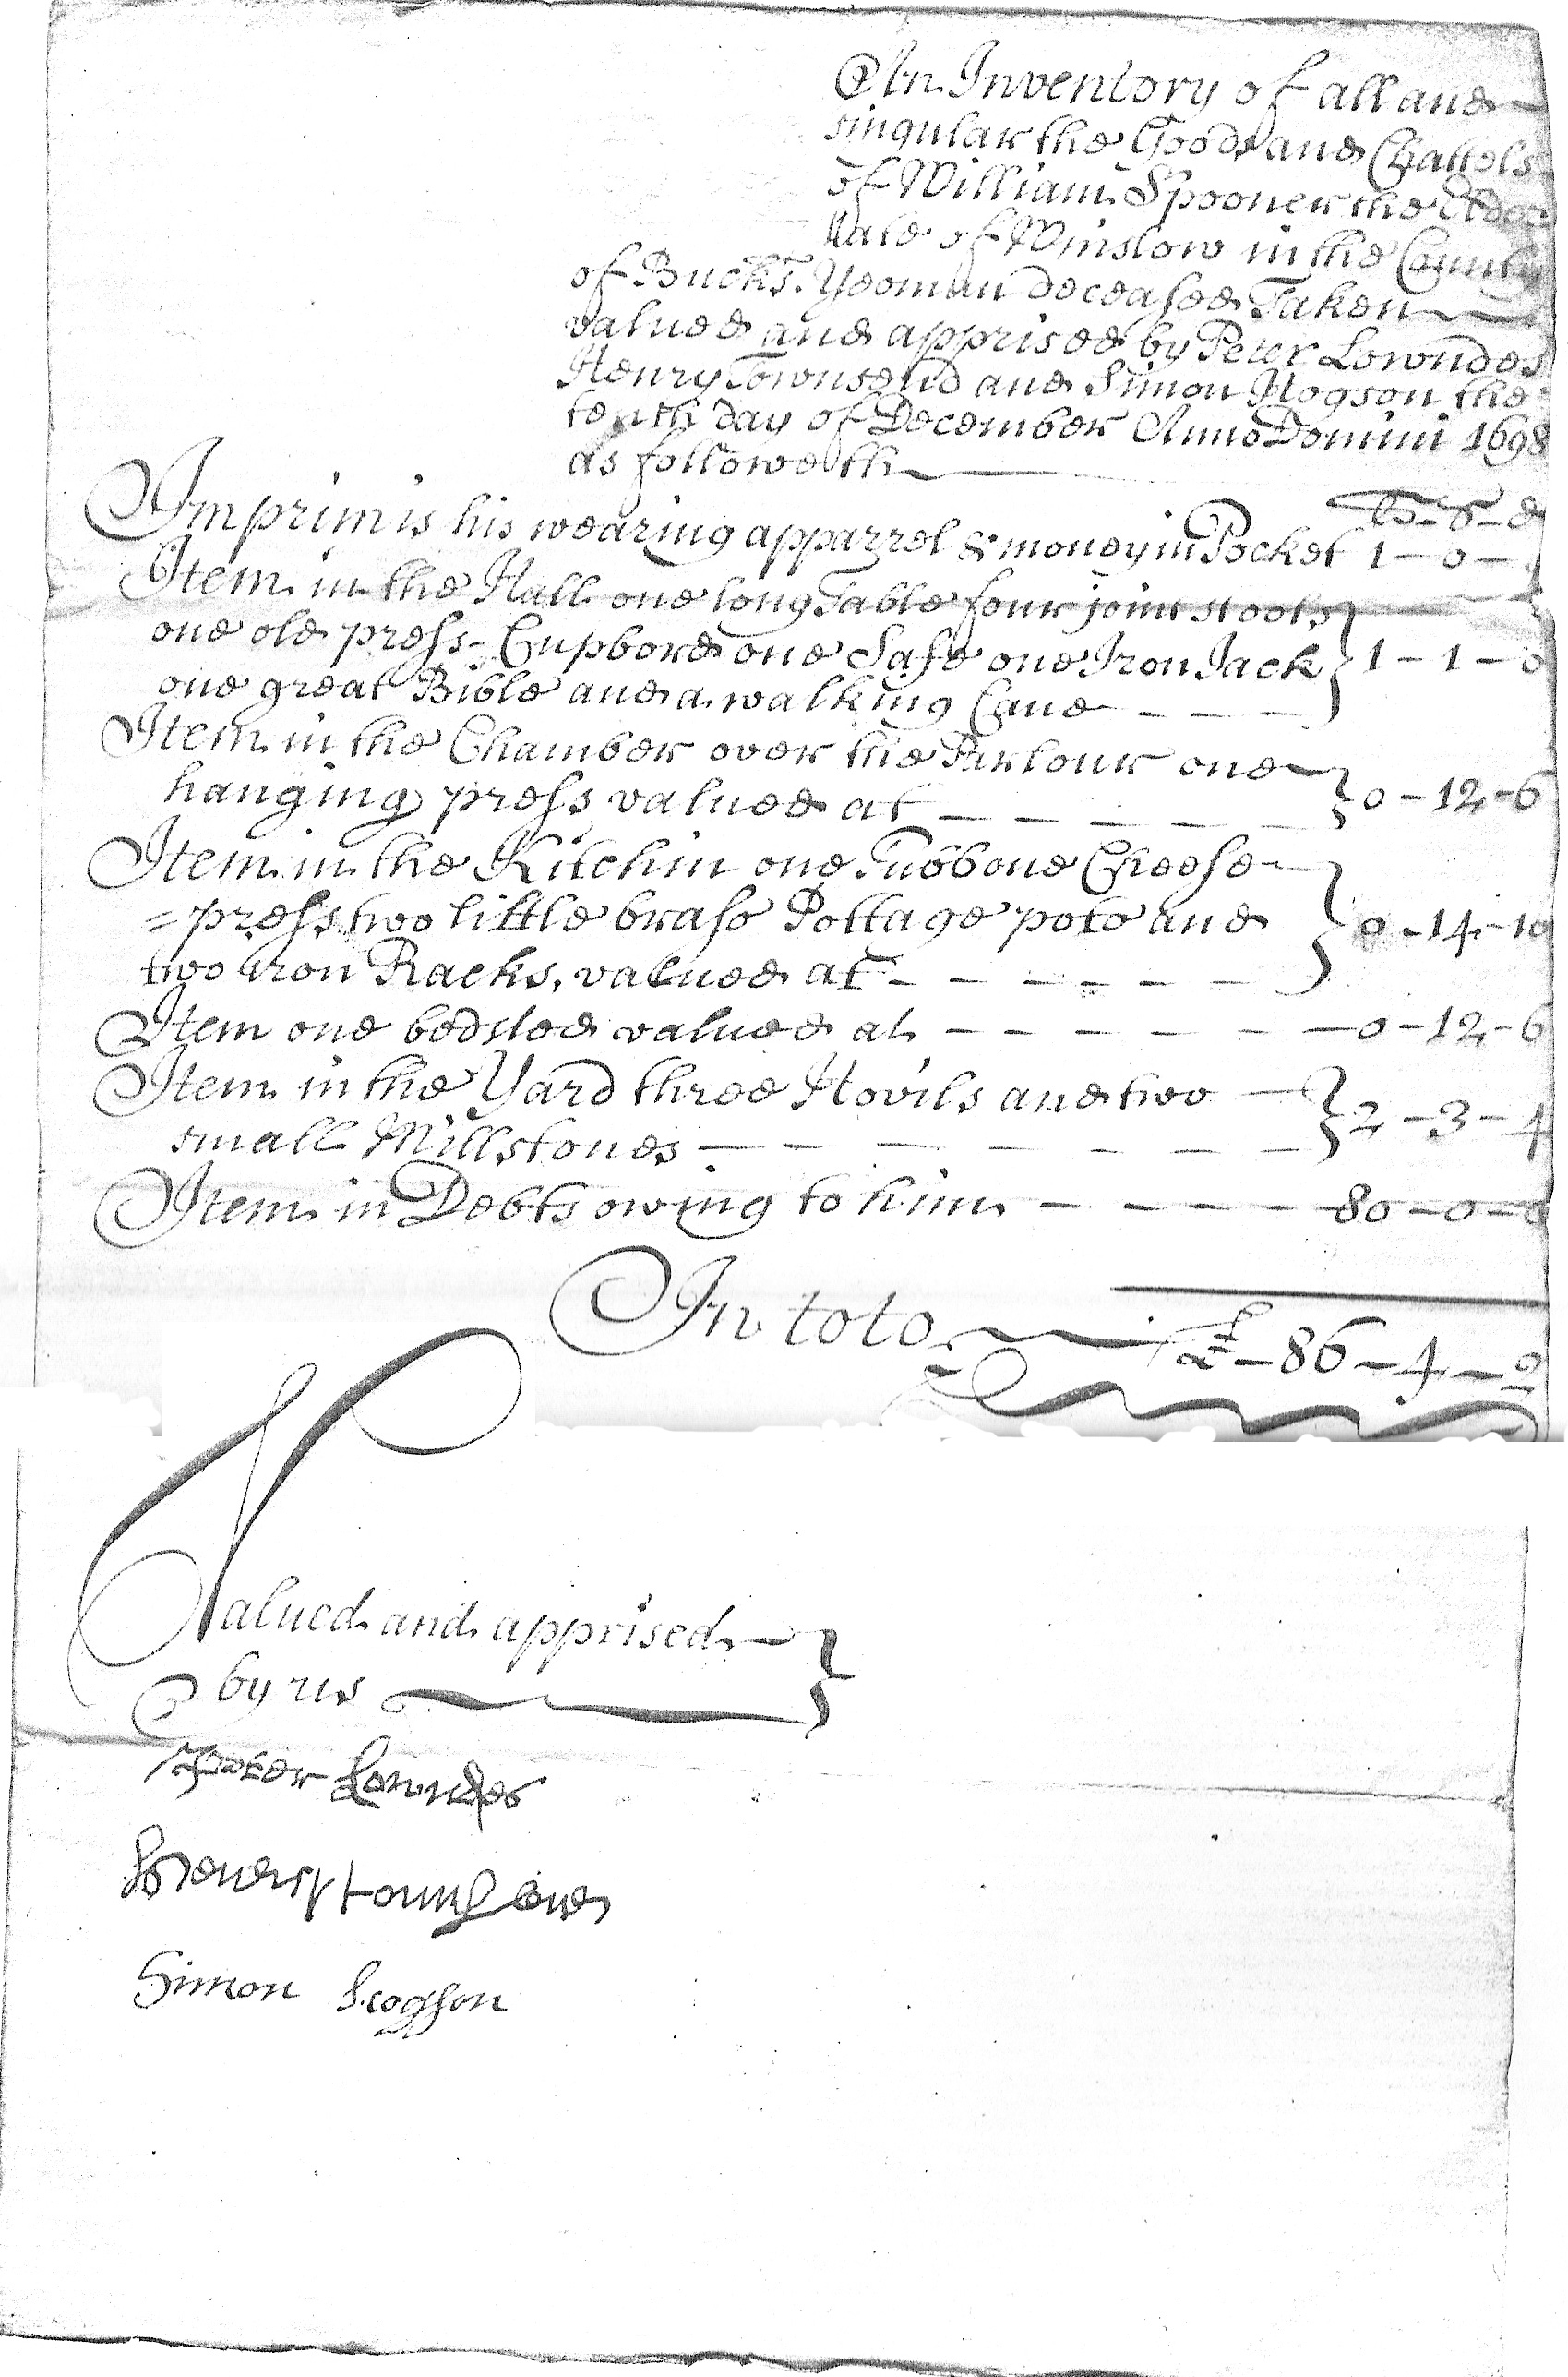 Inventory of William Spooner